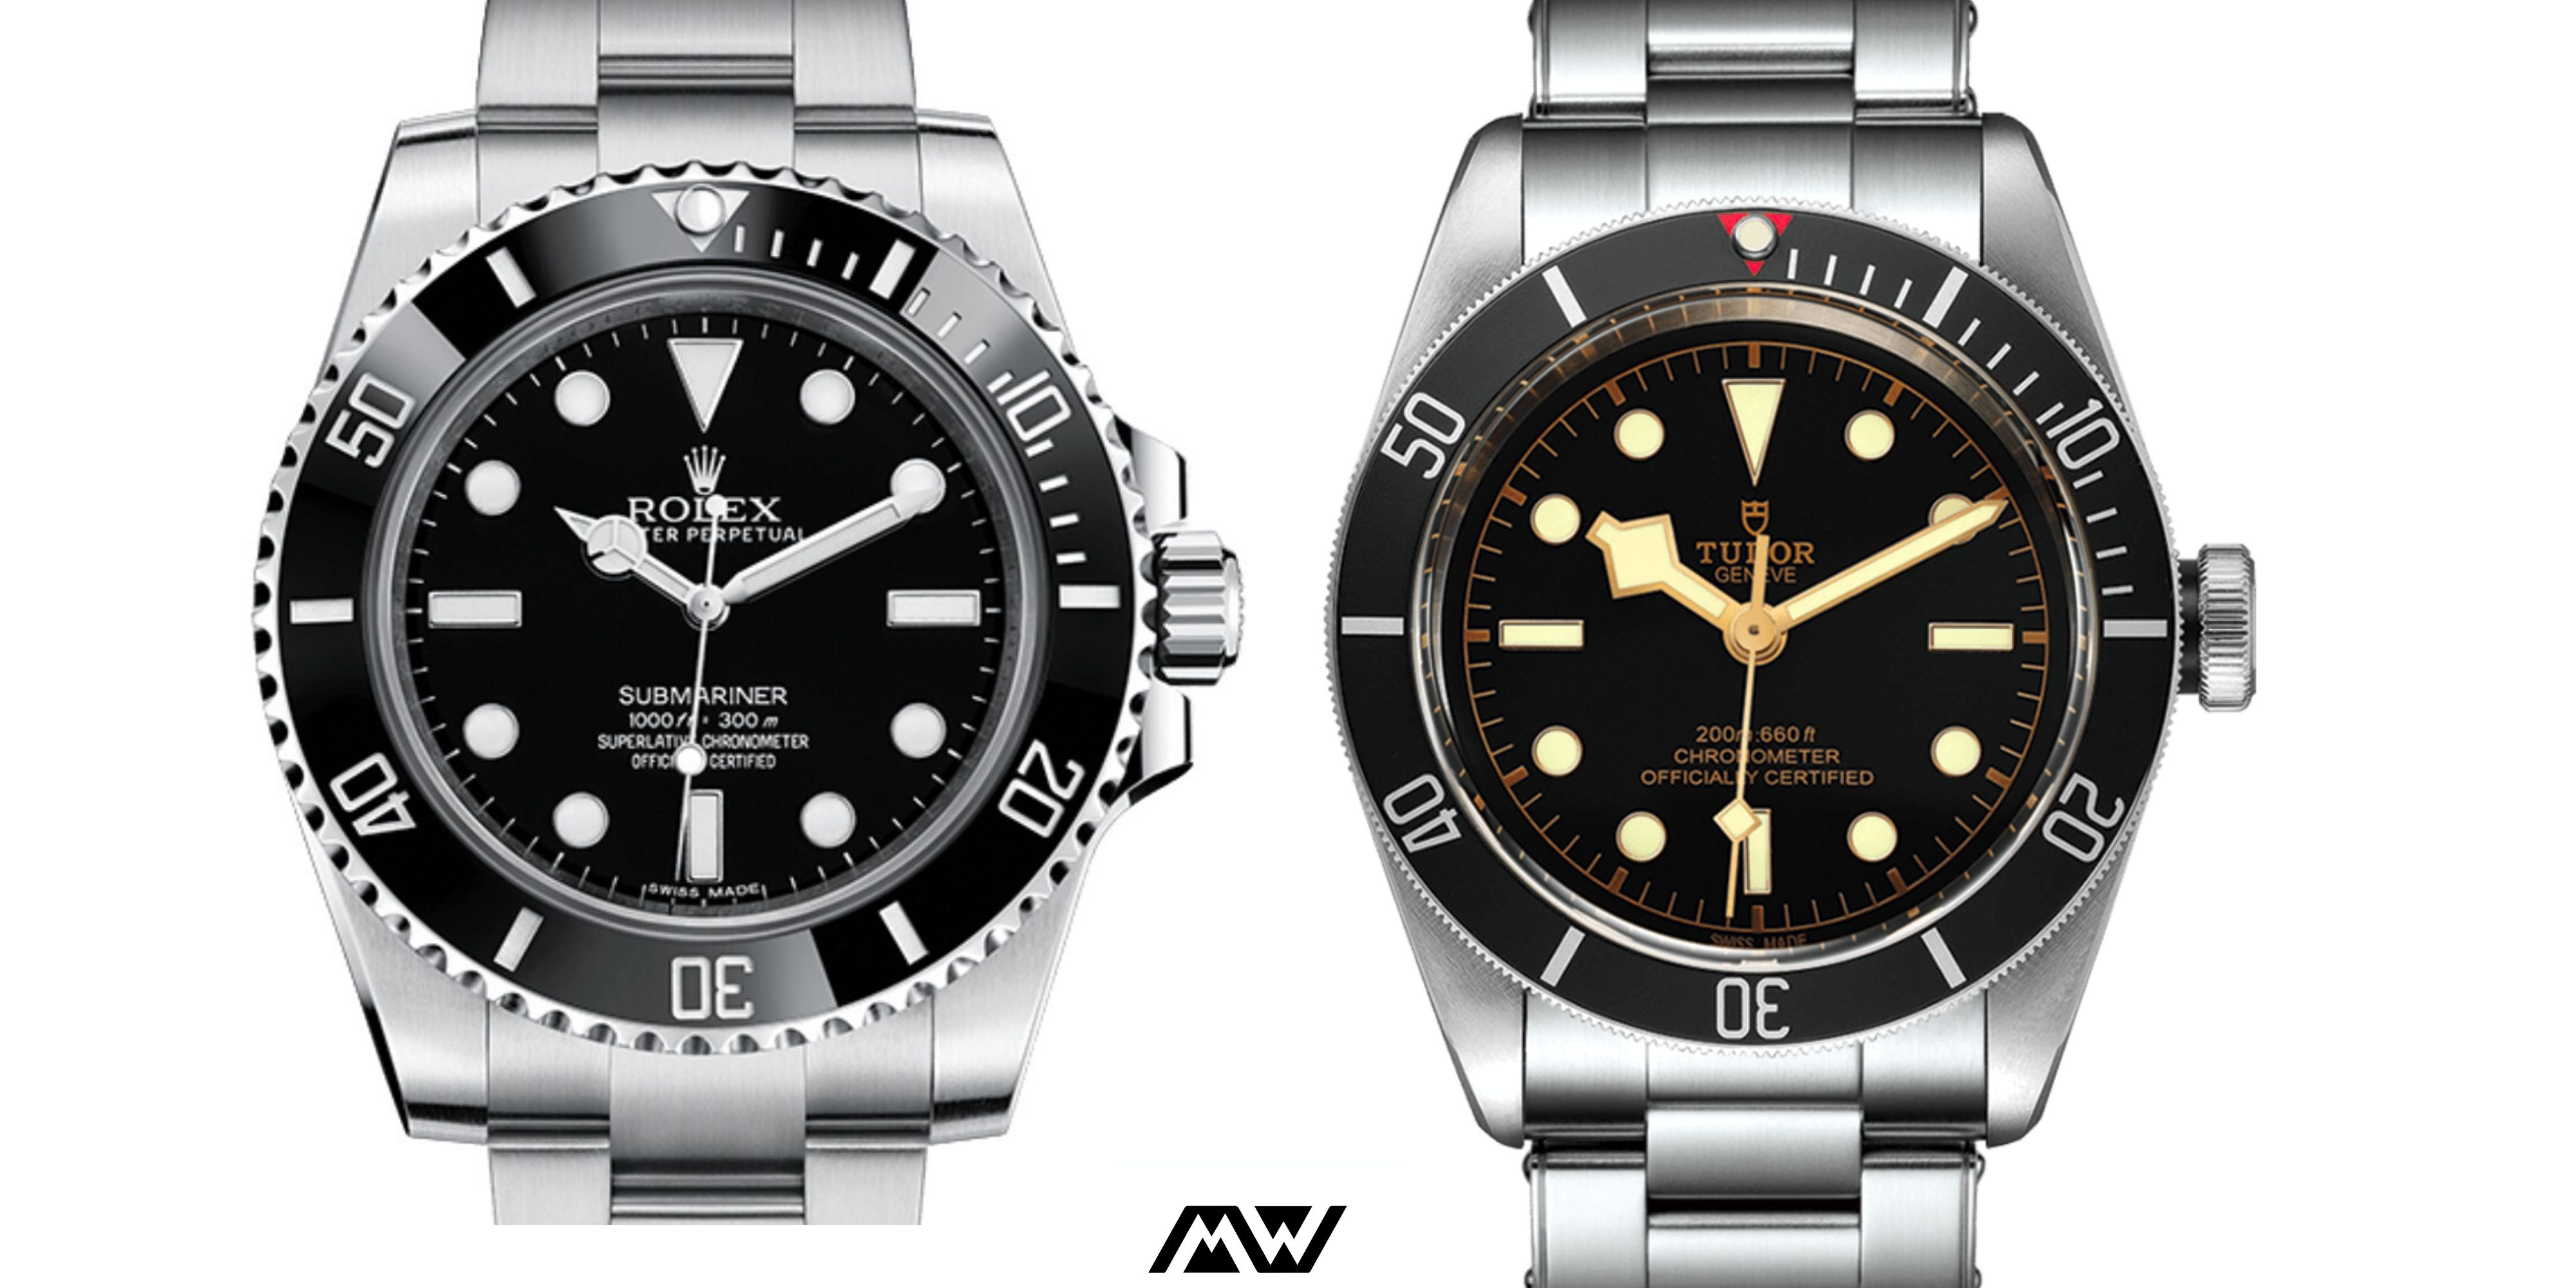 Rolex Submariner VS Tudor Black Bay - Which to Choose?